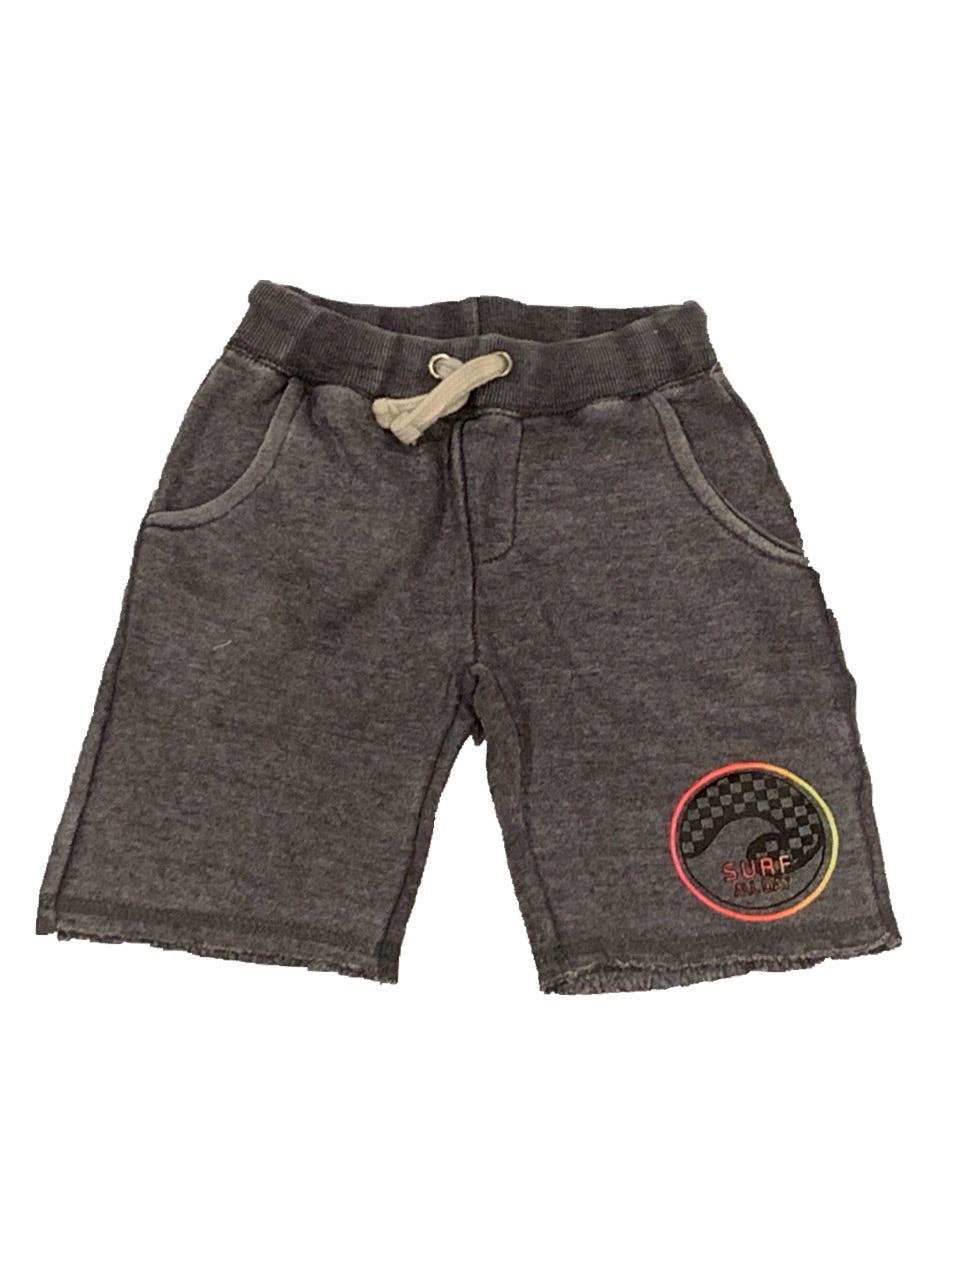 Vintage Havana Boys Steel Grey Shorts Surf All Day